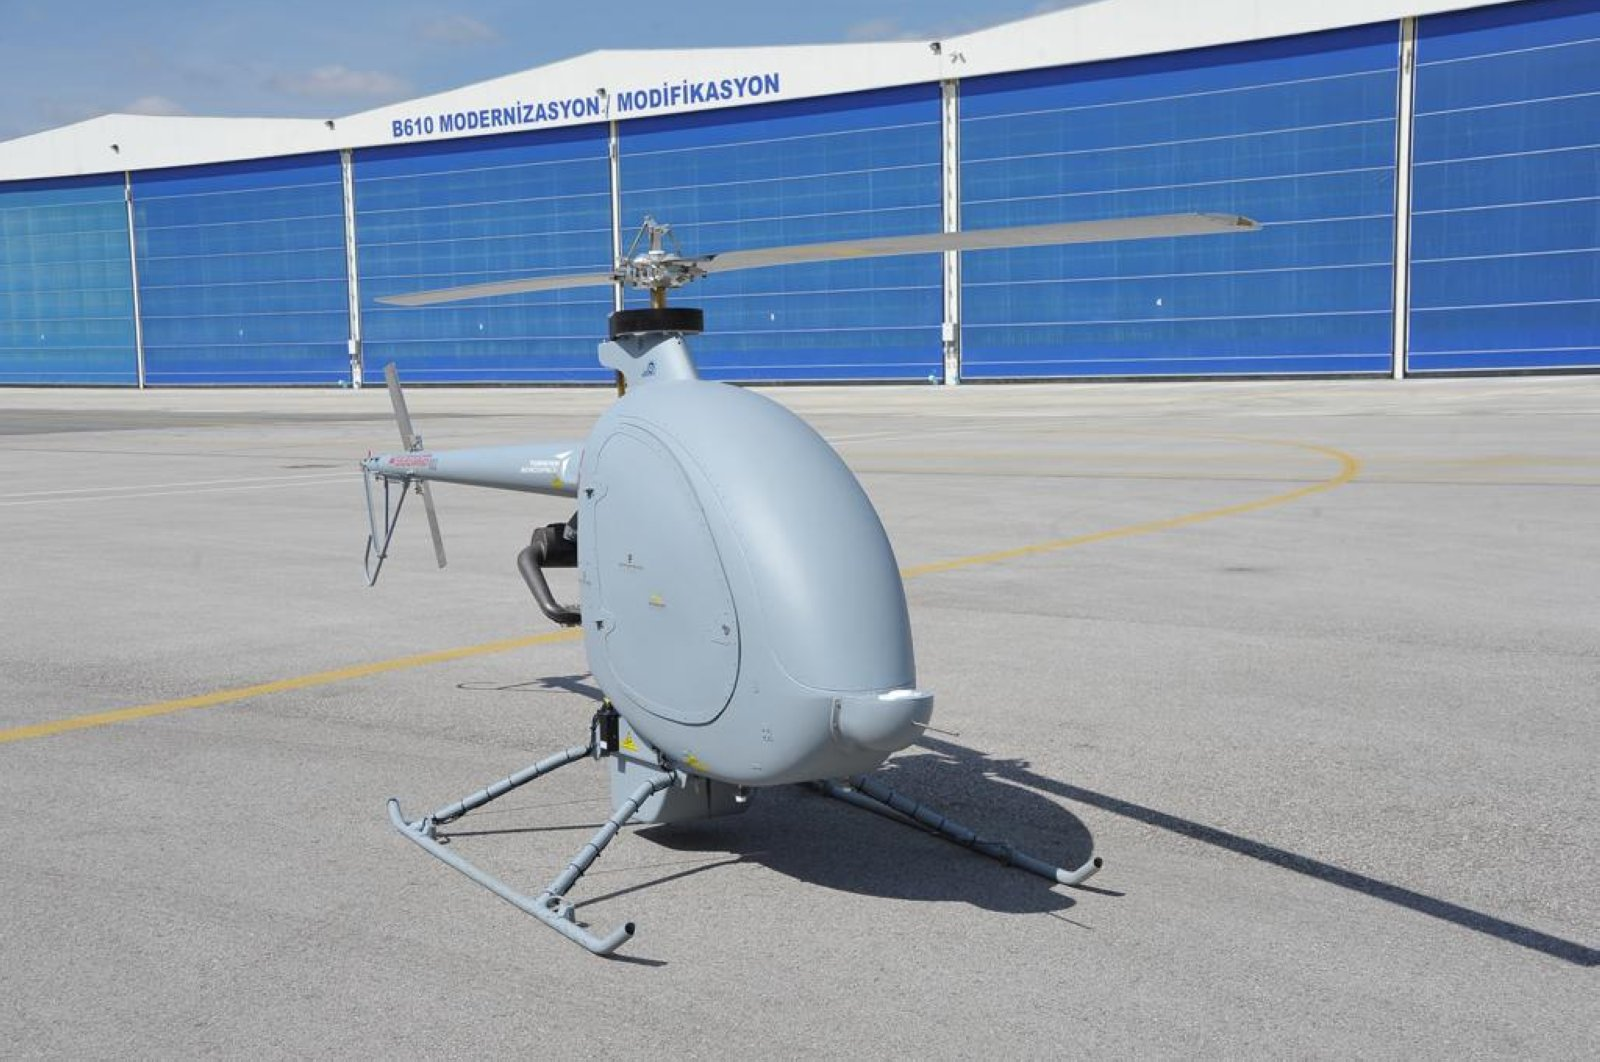 A cargo drone developed in a joint project between Turkey's Defense Industries Presidency (SSB) and Turkish Aerospace Industries (TAI), June 29, 2020. (SSB / AA)